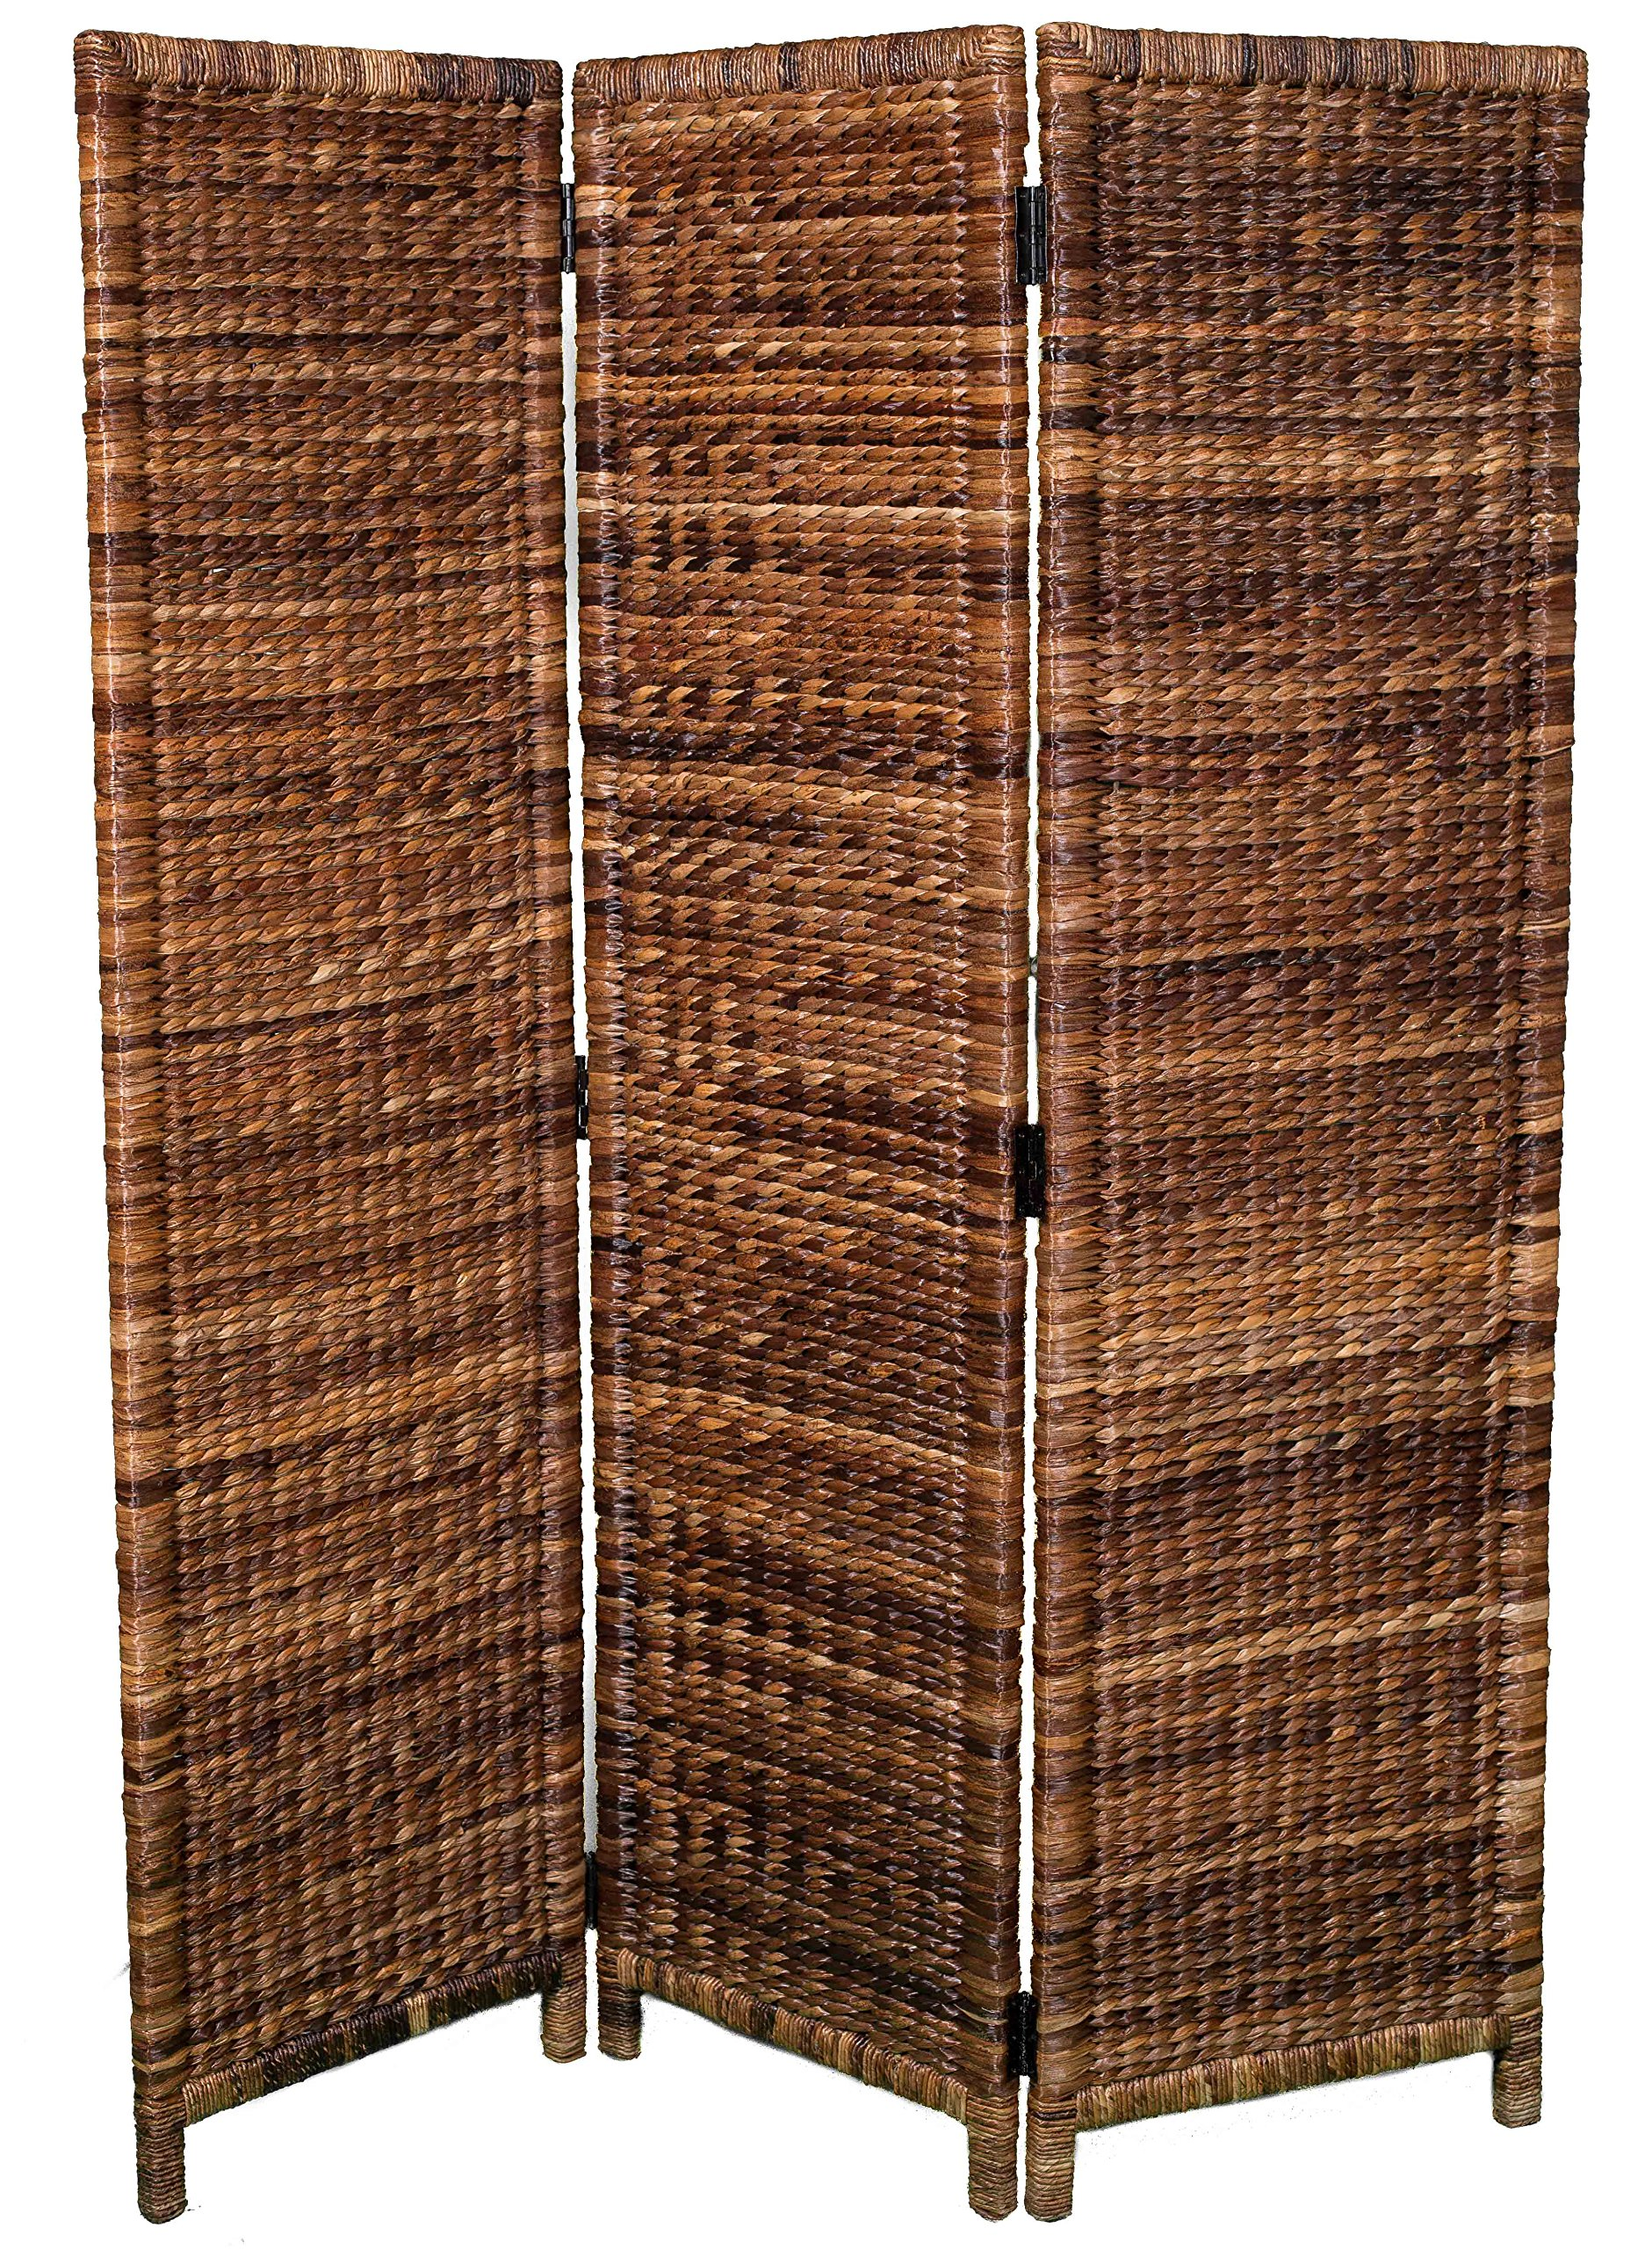 BIRDROCK HOME 3 Panel Seagrass Room Divider - Folding Sections - Partition Screen - Handwoven Abaca - Home Decor by BIRDROCK HOME